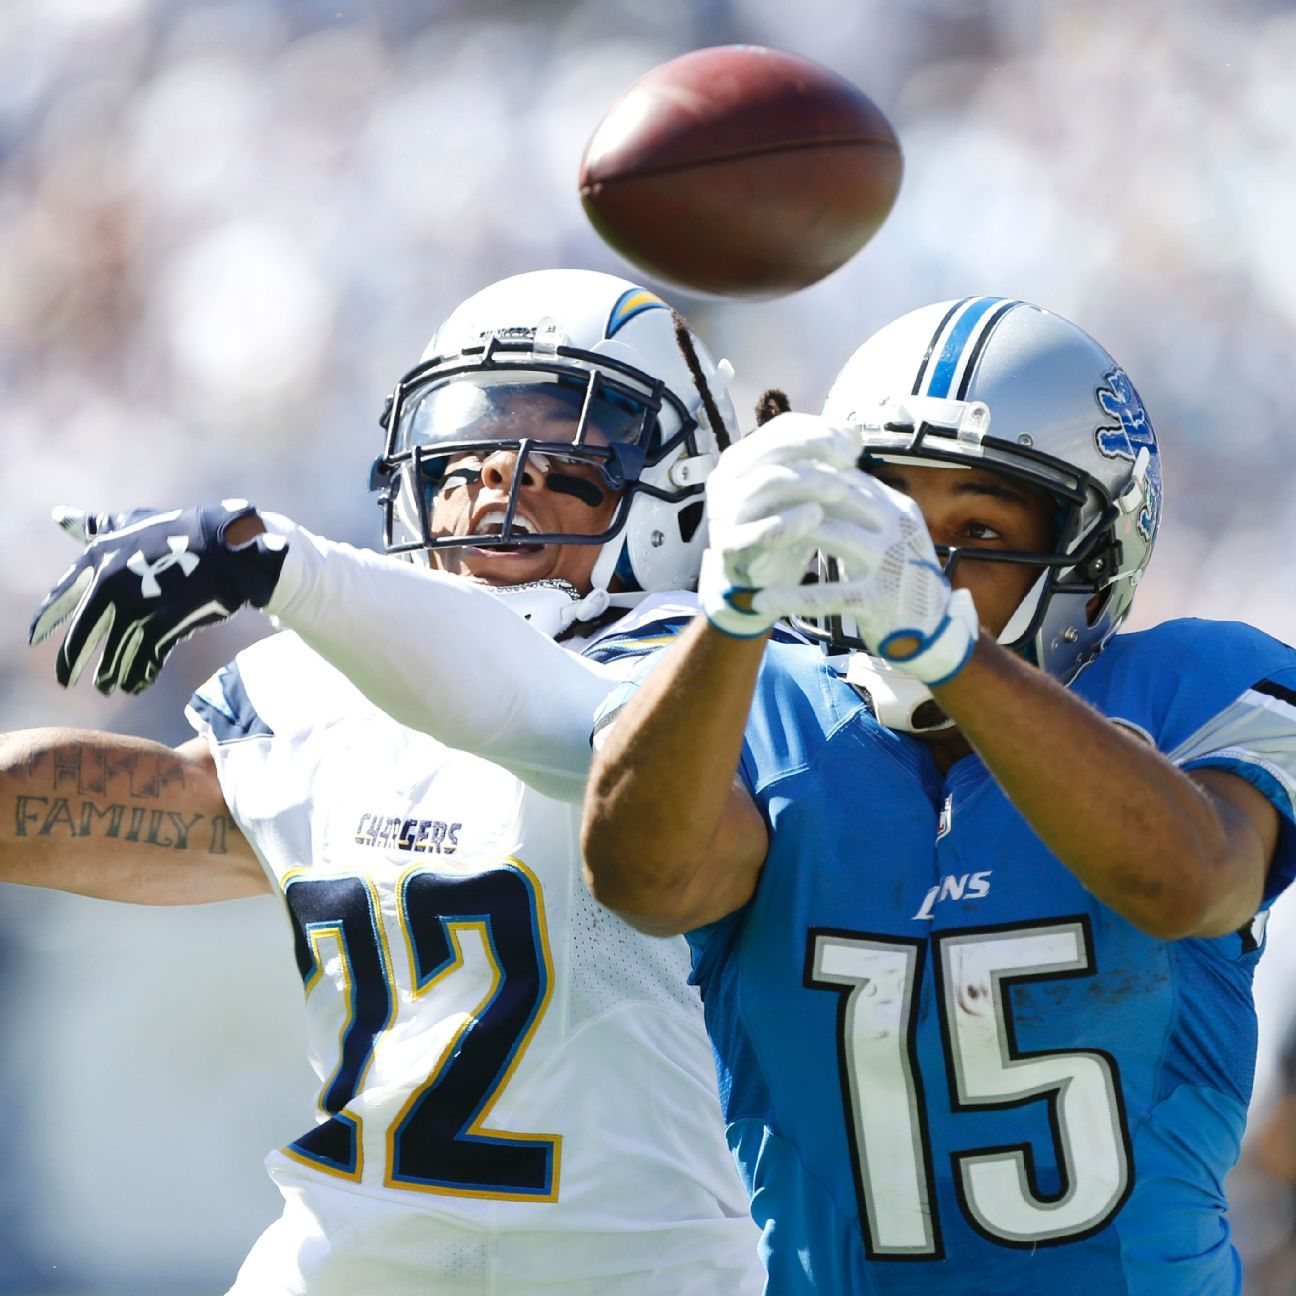 San Diego Chargers Coaches: San Diego Chargers' Jason Verrett Bottled Up Detroit Lions